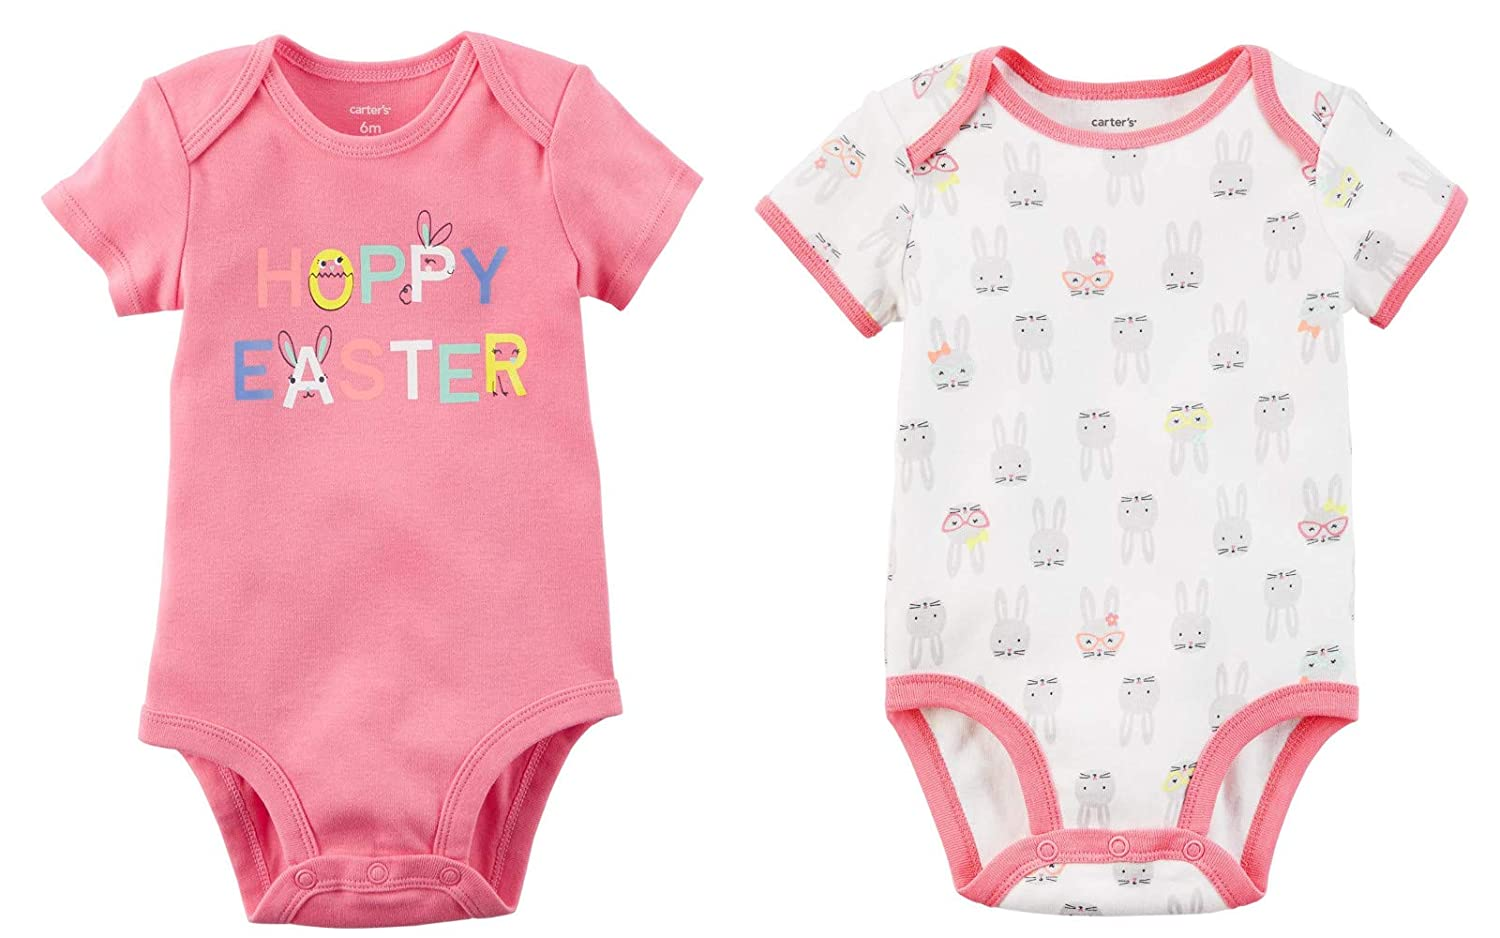 cf4e84497ad7 Amazon.com: Carter's Baby Girl's Easter Outfit Set of 2 Bodysuits Bunny and  Hoppy Easter: Clothing